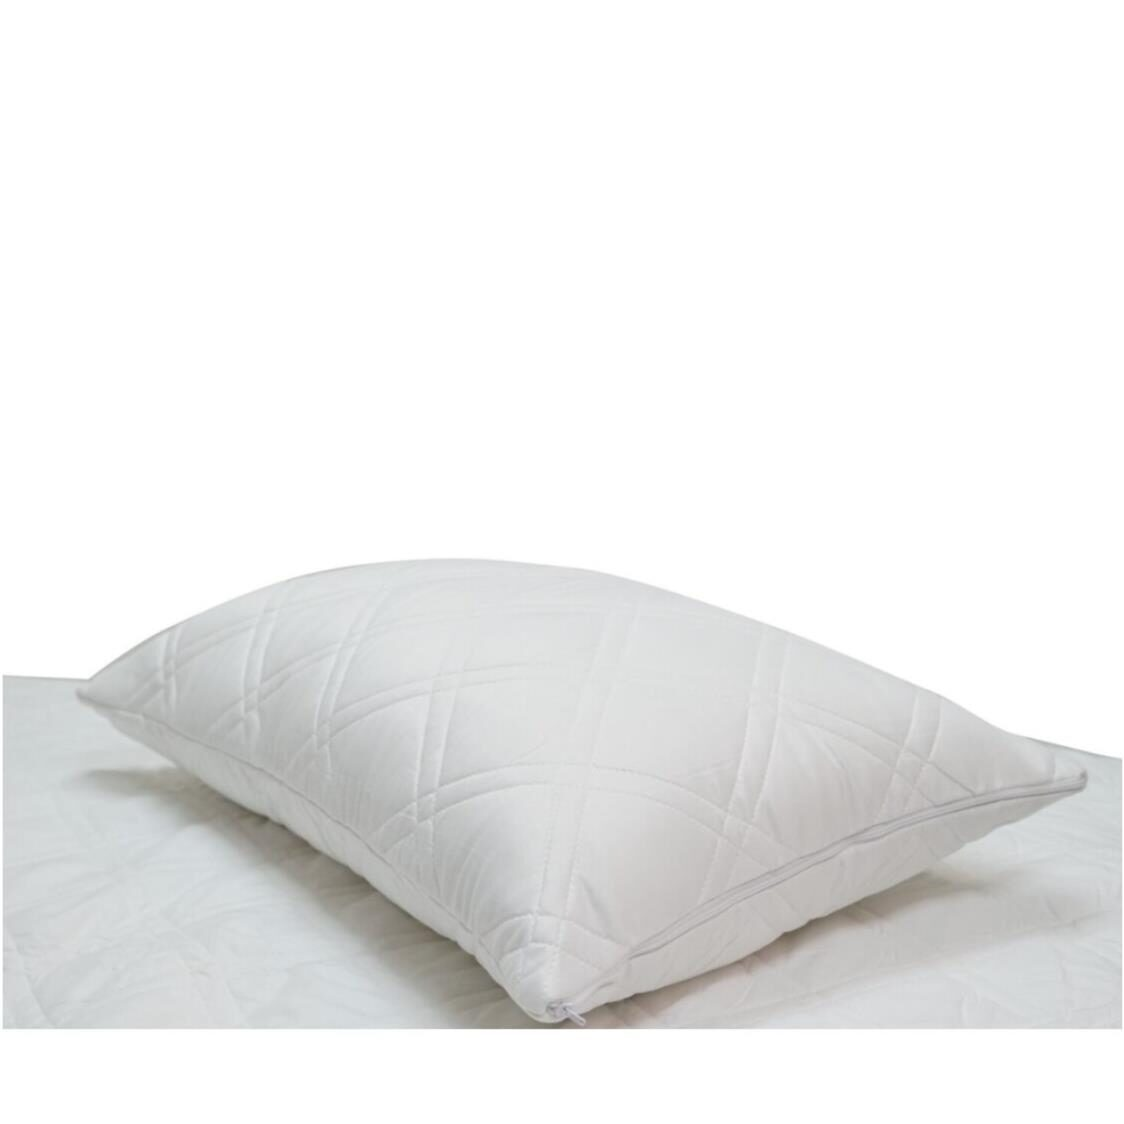 Domus Water Proof Pillow Protector